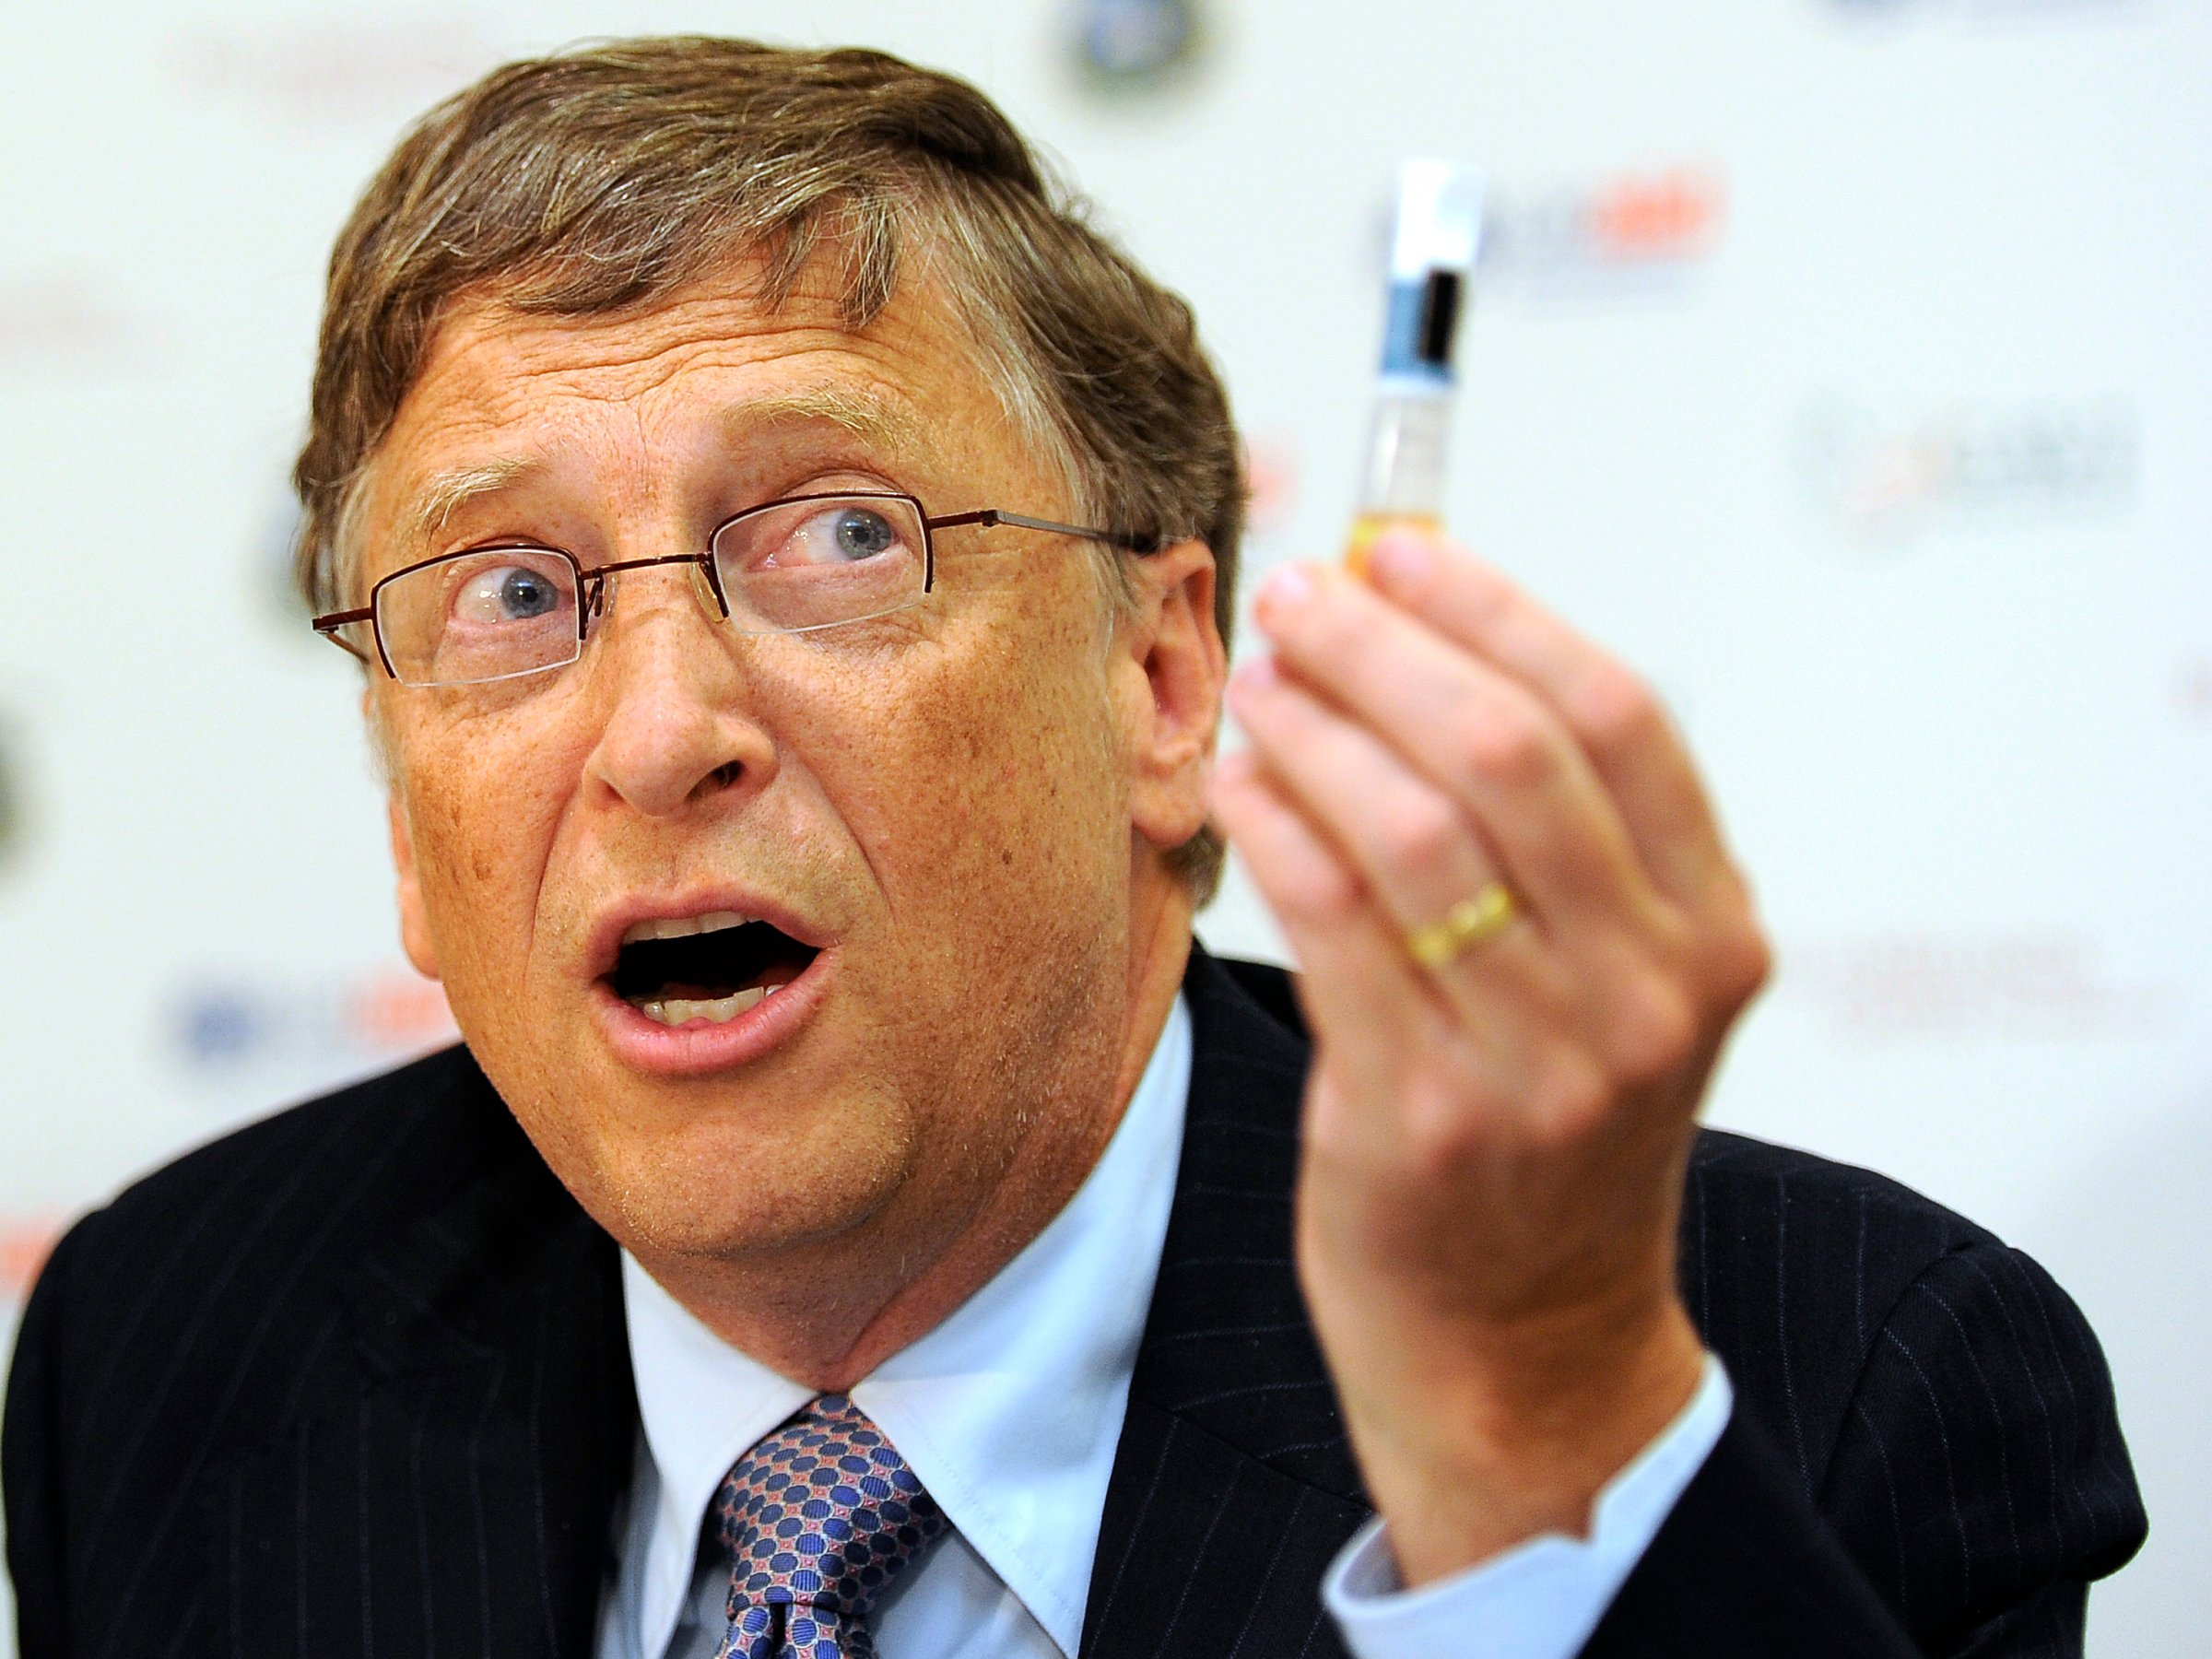 Rotary, Bill & Melinda Gates inject fresh US$450 million to eradicate polio